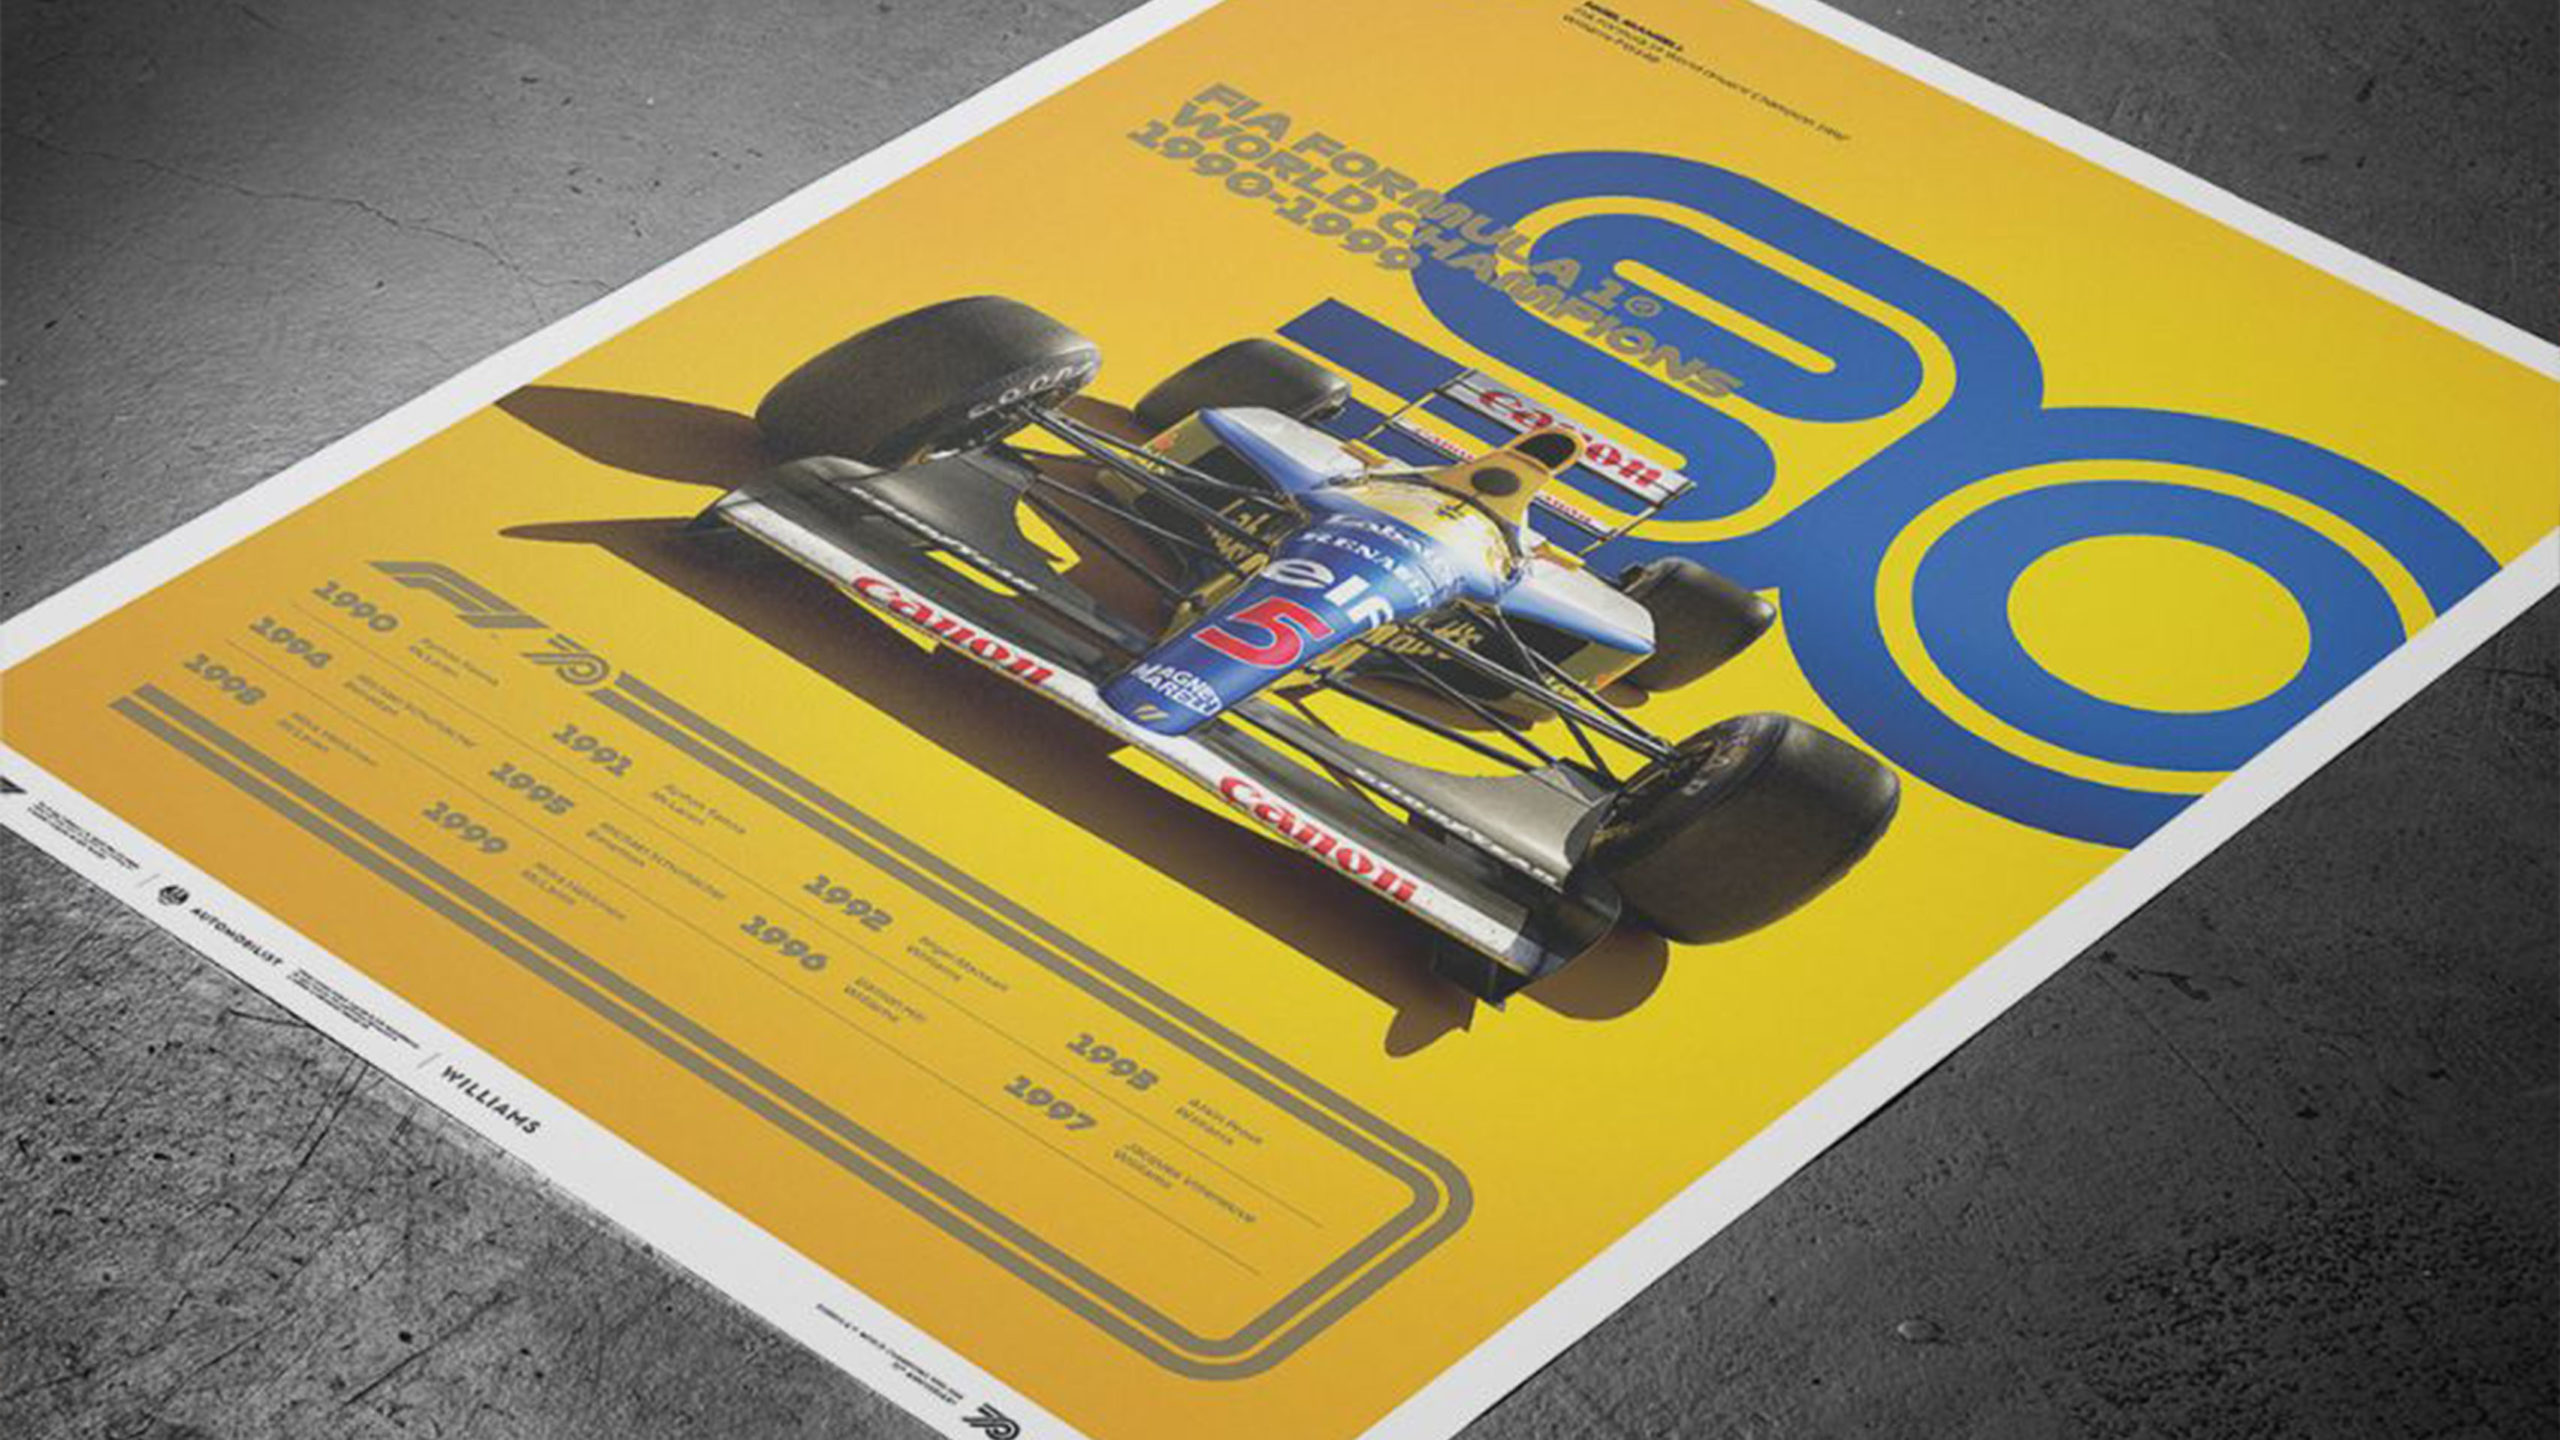 F1 decades 90s poster with 1992 Williams FW14B